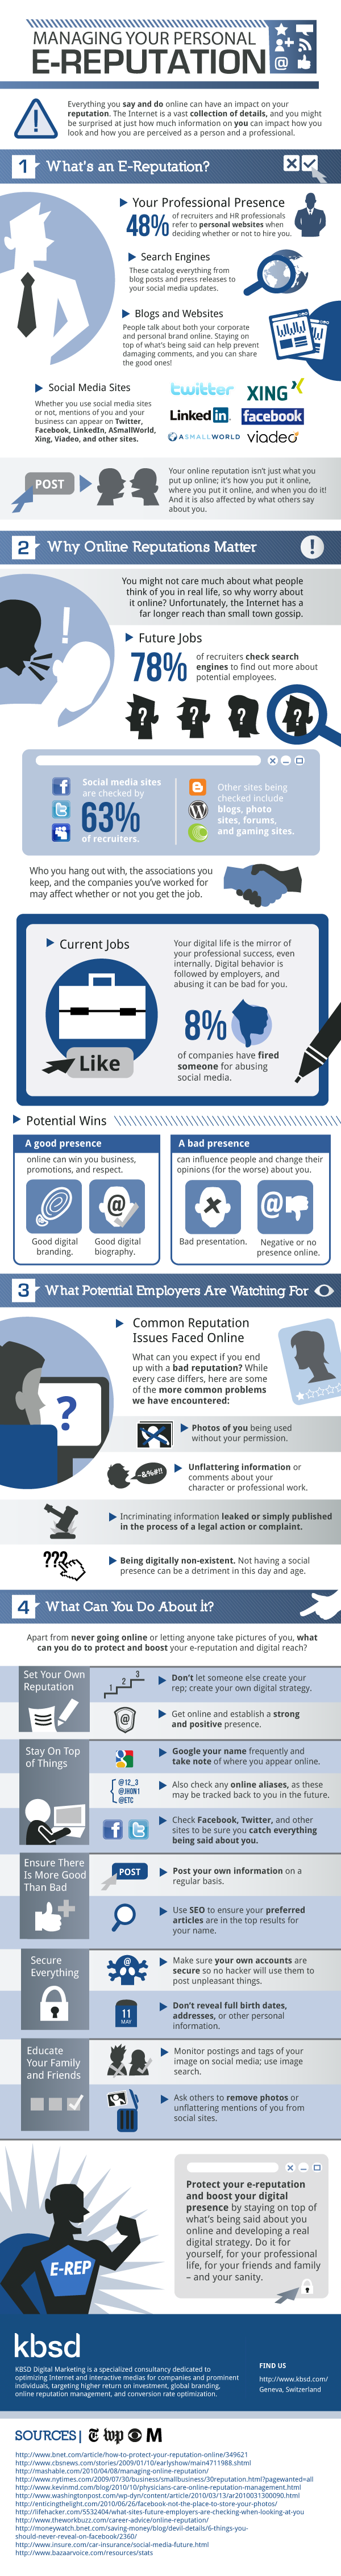 online-e-reputation-management-infographic